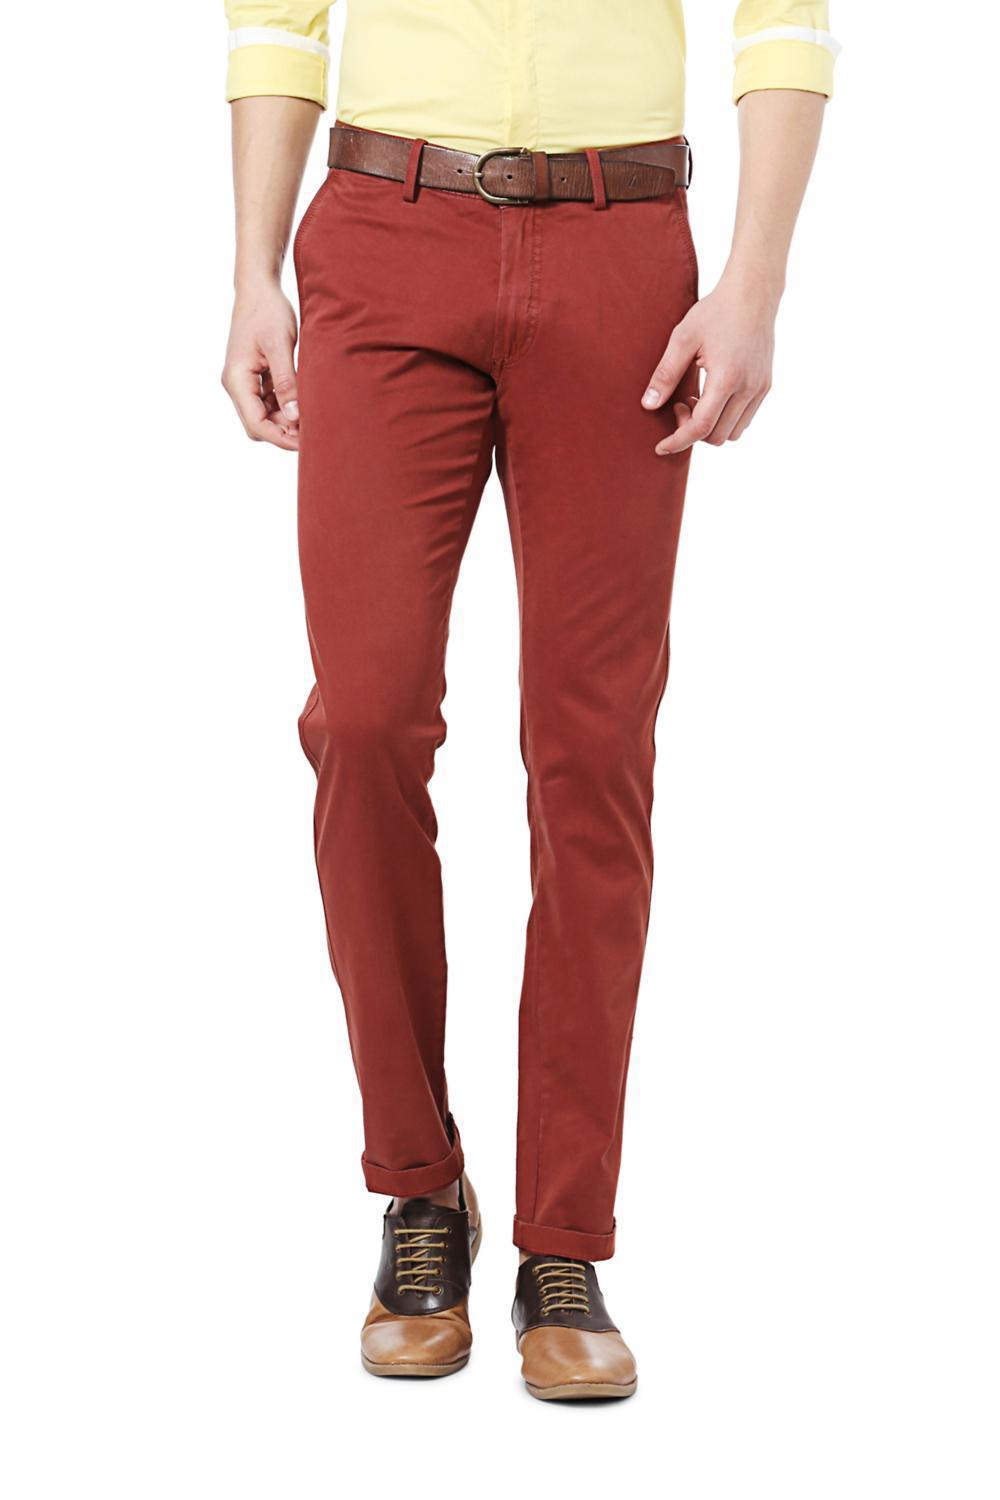 7e33b74f3d Allen Solly Trousers   Chinos